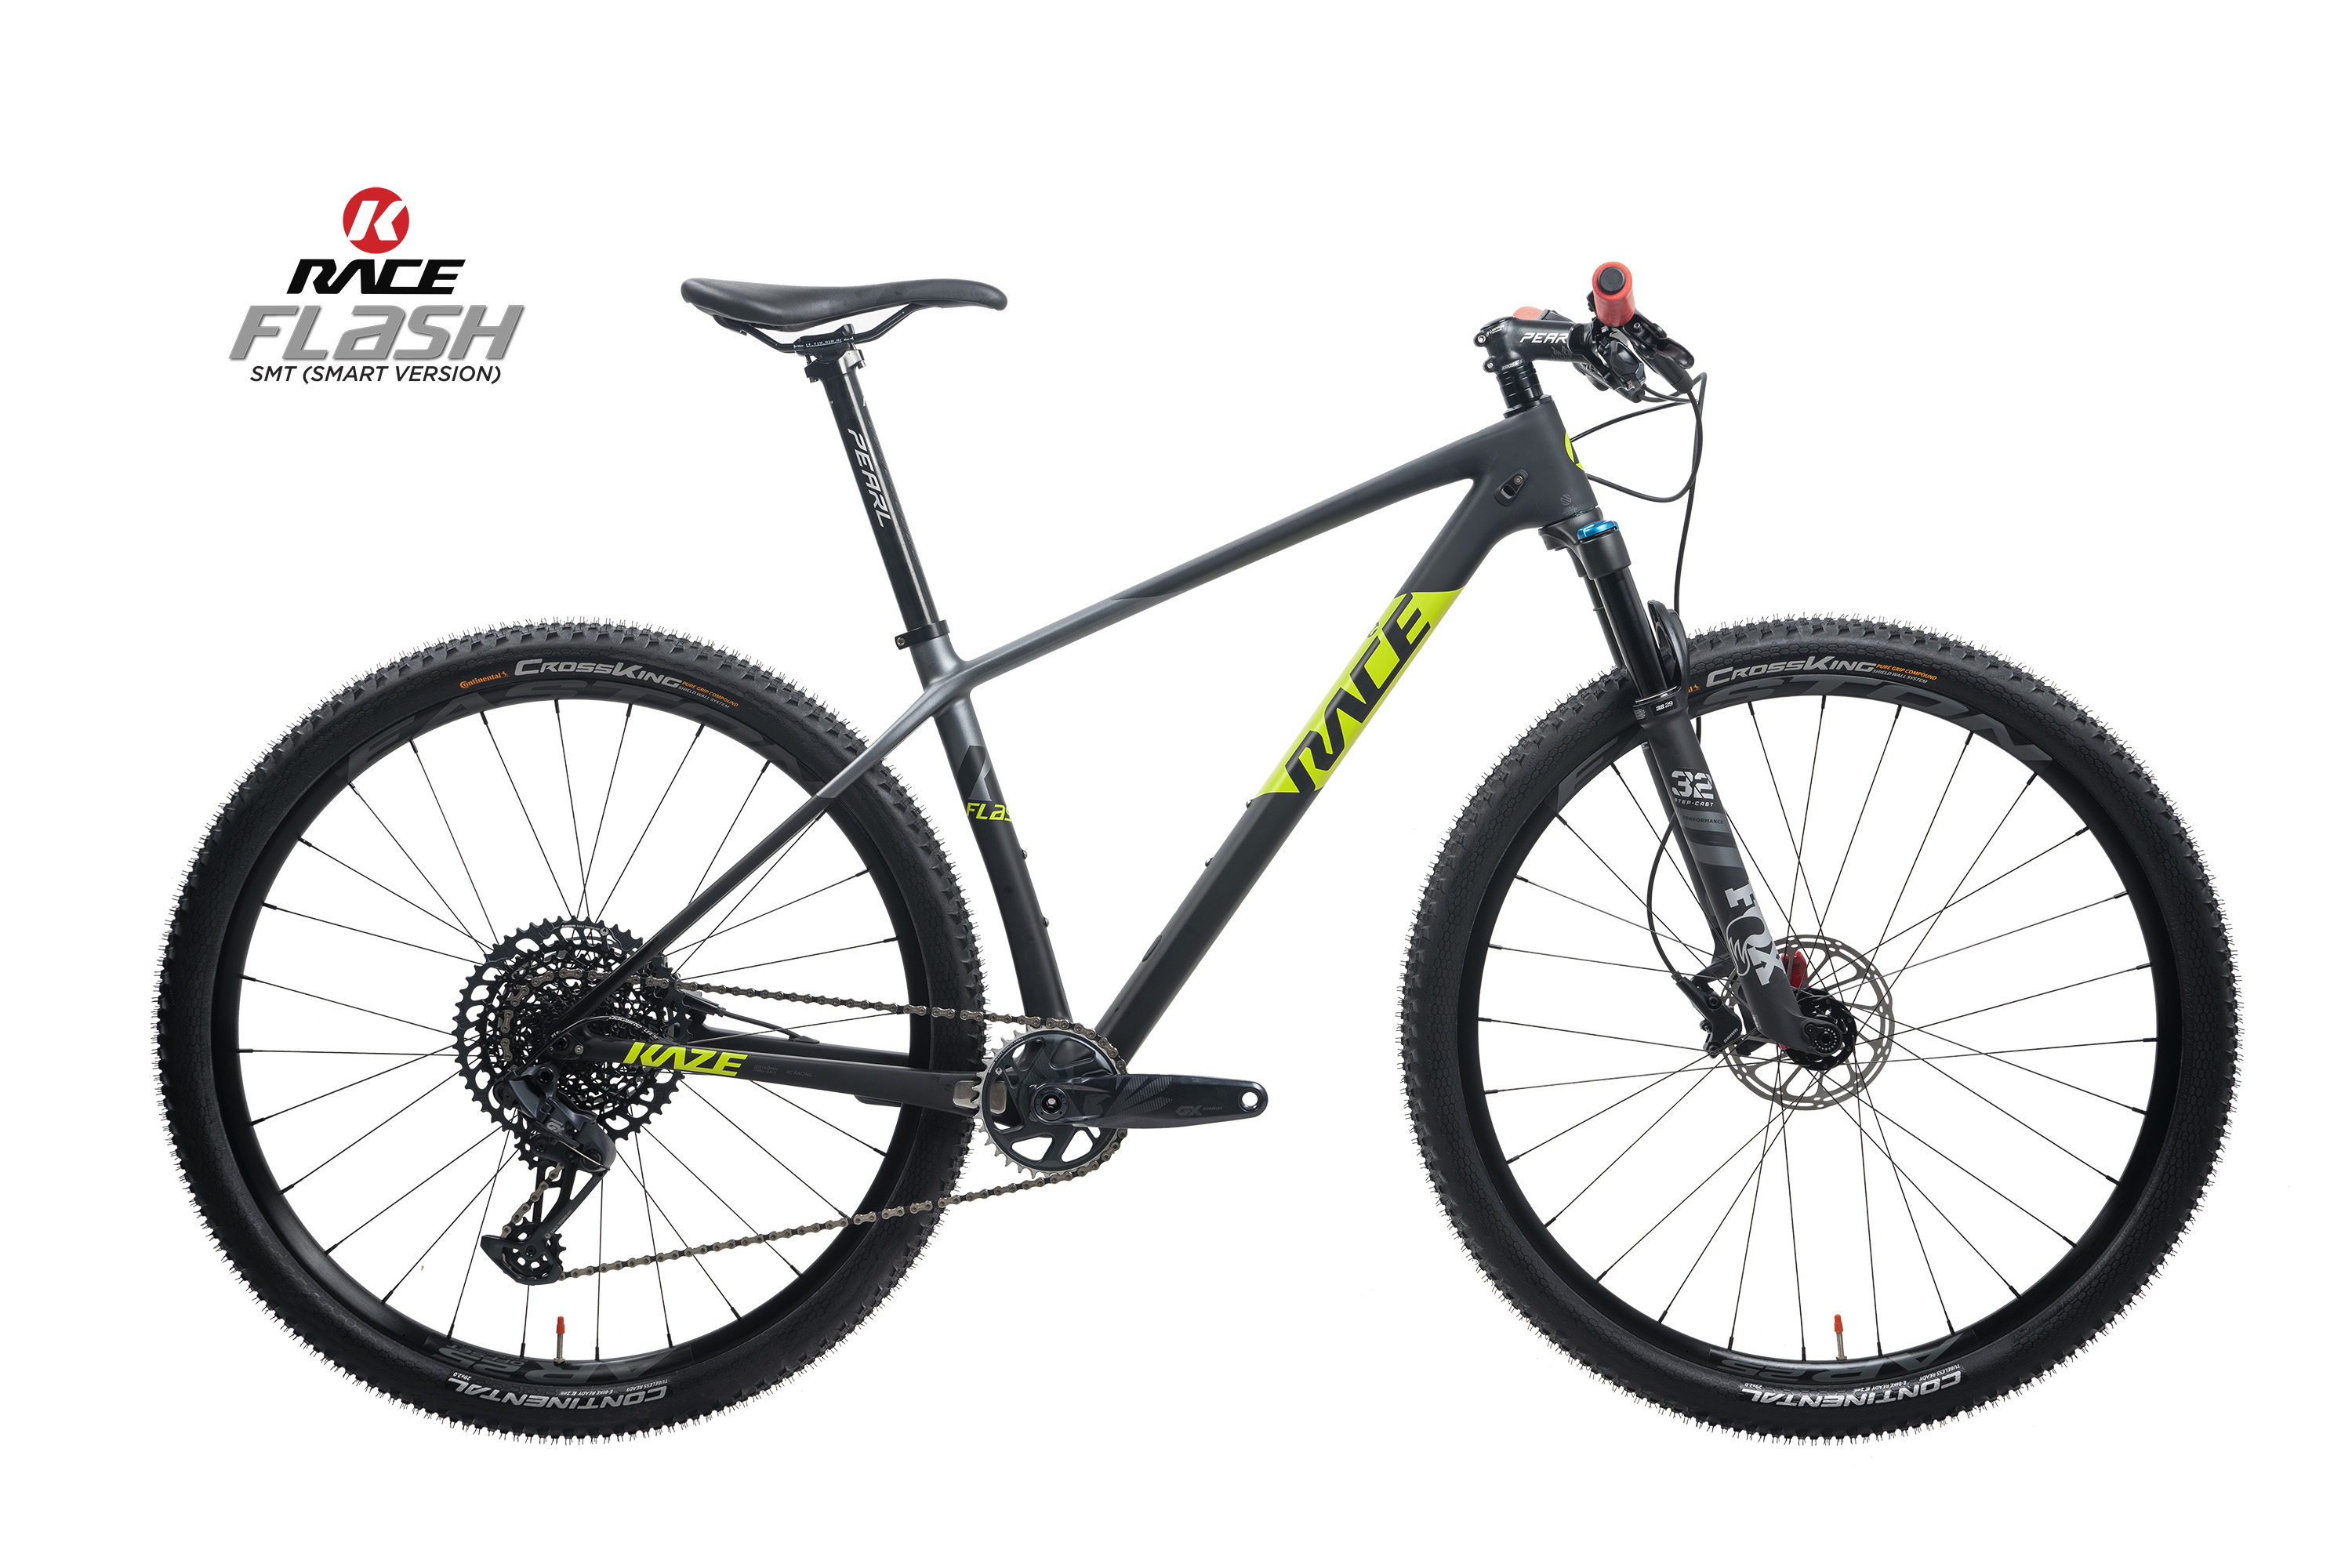 KAZE RACE | FLASH 29er SMT (Smart version) 2021